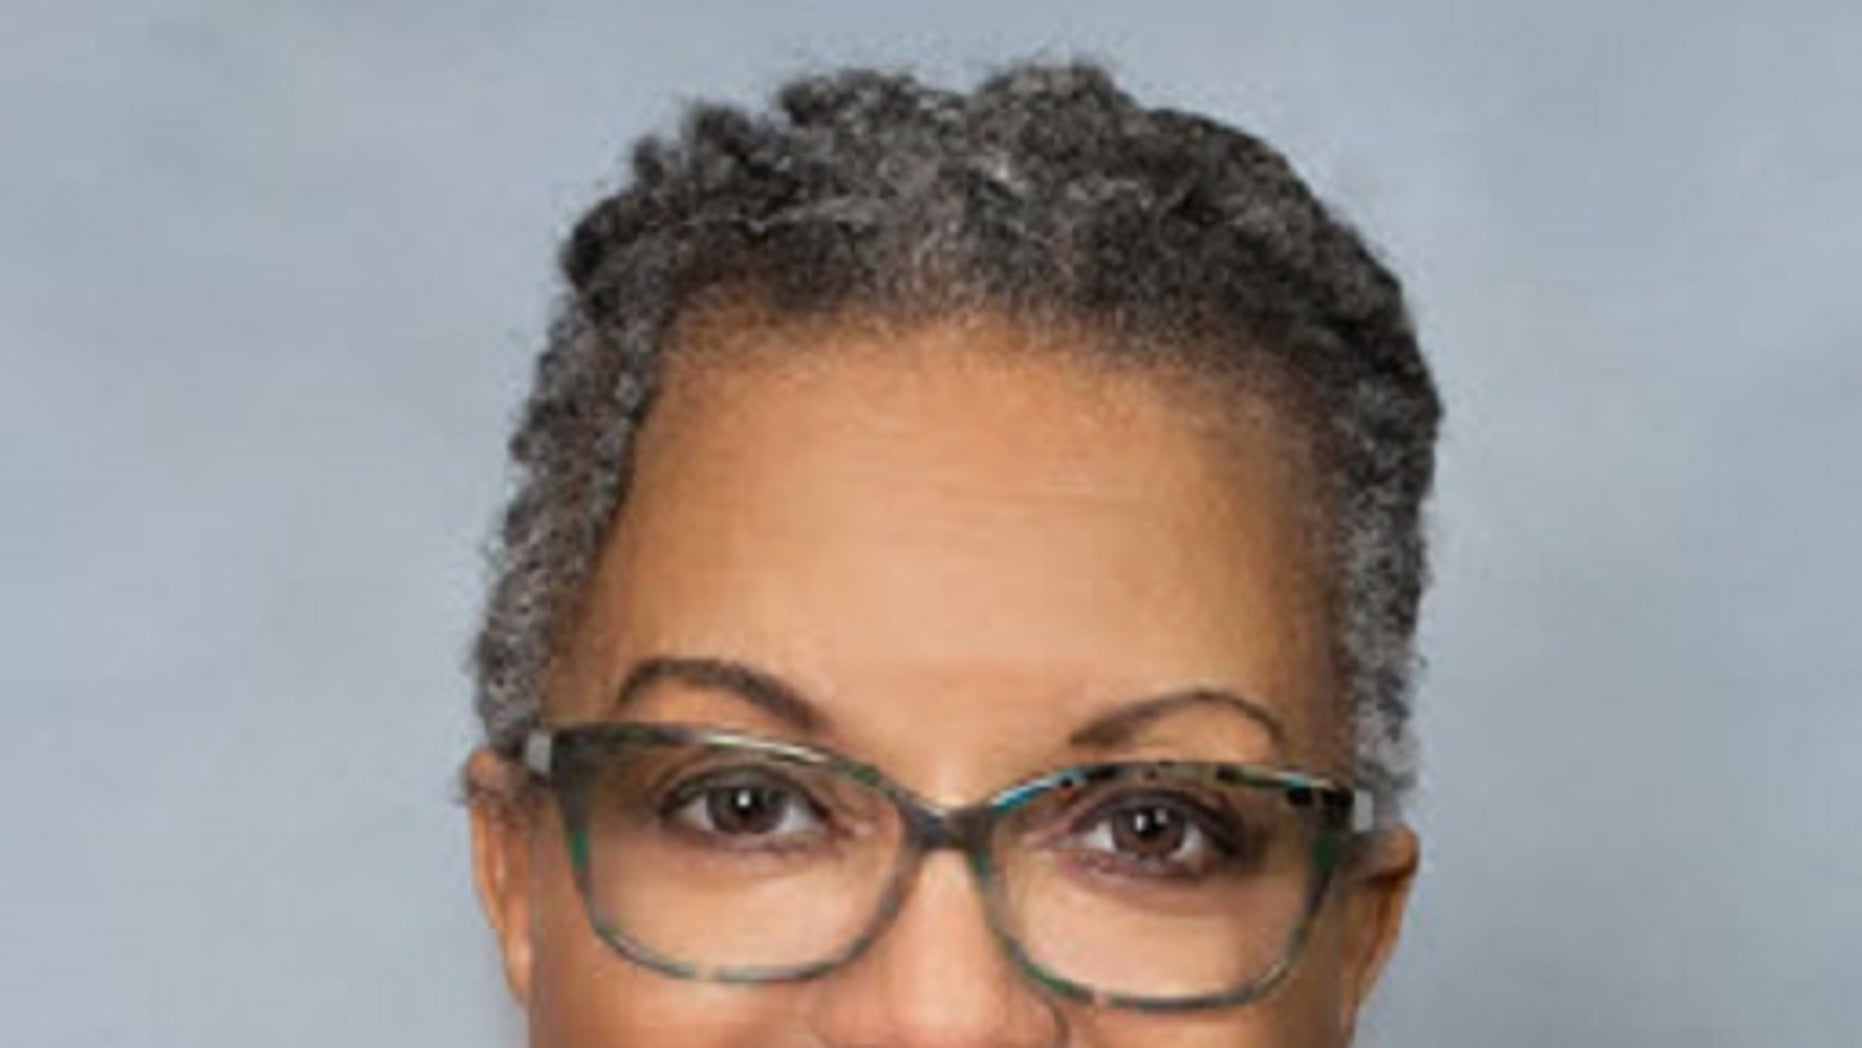 Former North Carolina state Sen. Angela Bryant has joined the state's parole commission, an appointment by Gov. Roy Cooper. She will reportedly make about $100,000 more than her legislative salary.